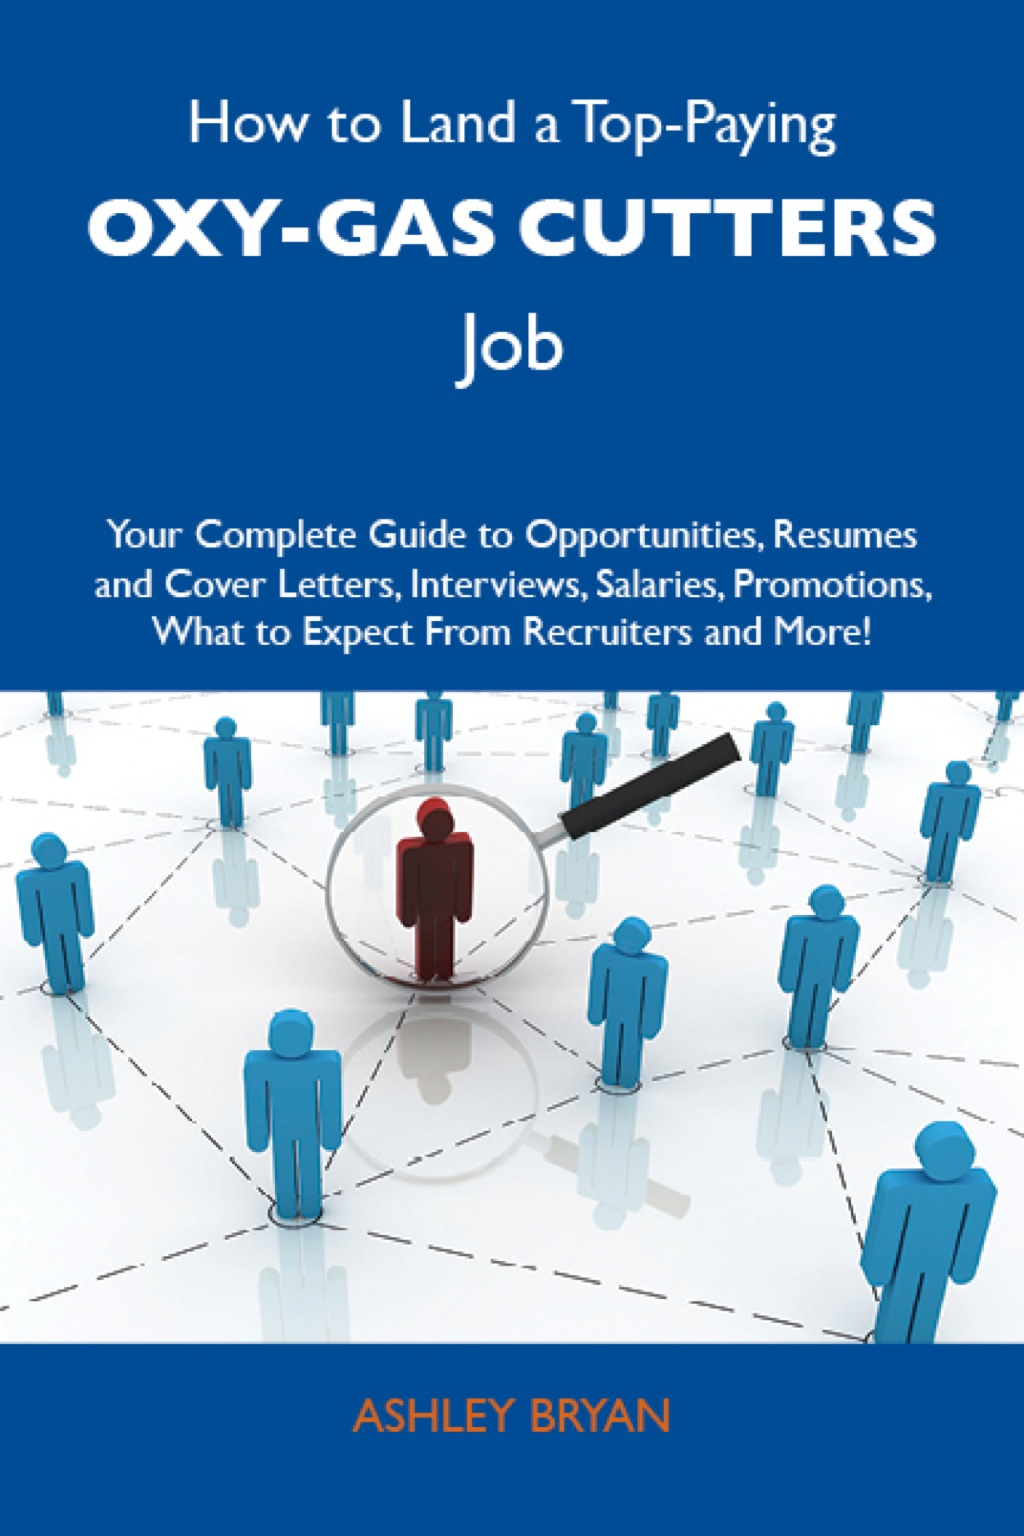 How to Land a Top-Paying Oxy-gas cutters Job: Your Complete Guide to Opportunities, Resumes and Cover Letters, Interviews, Salaries, Promotions, What to Expect From Recruiters and More (ebook) eBooks